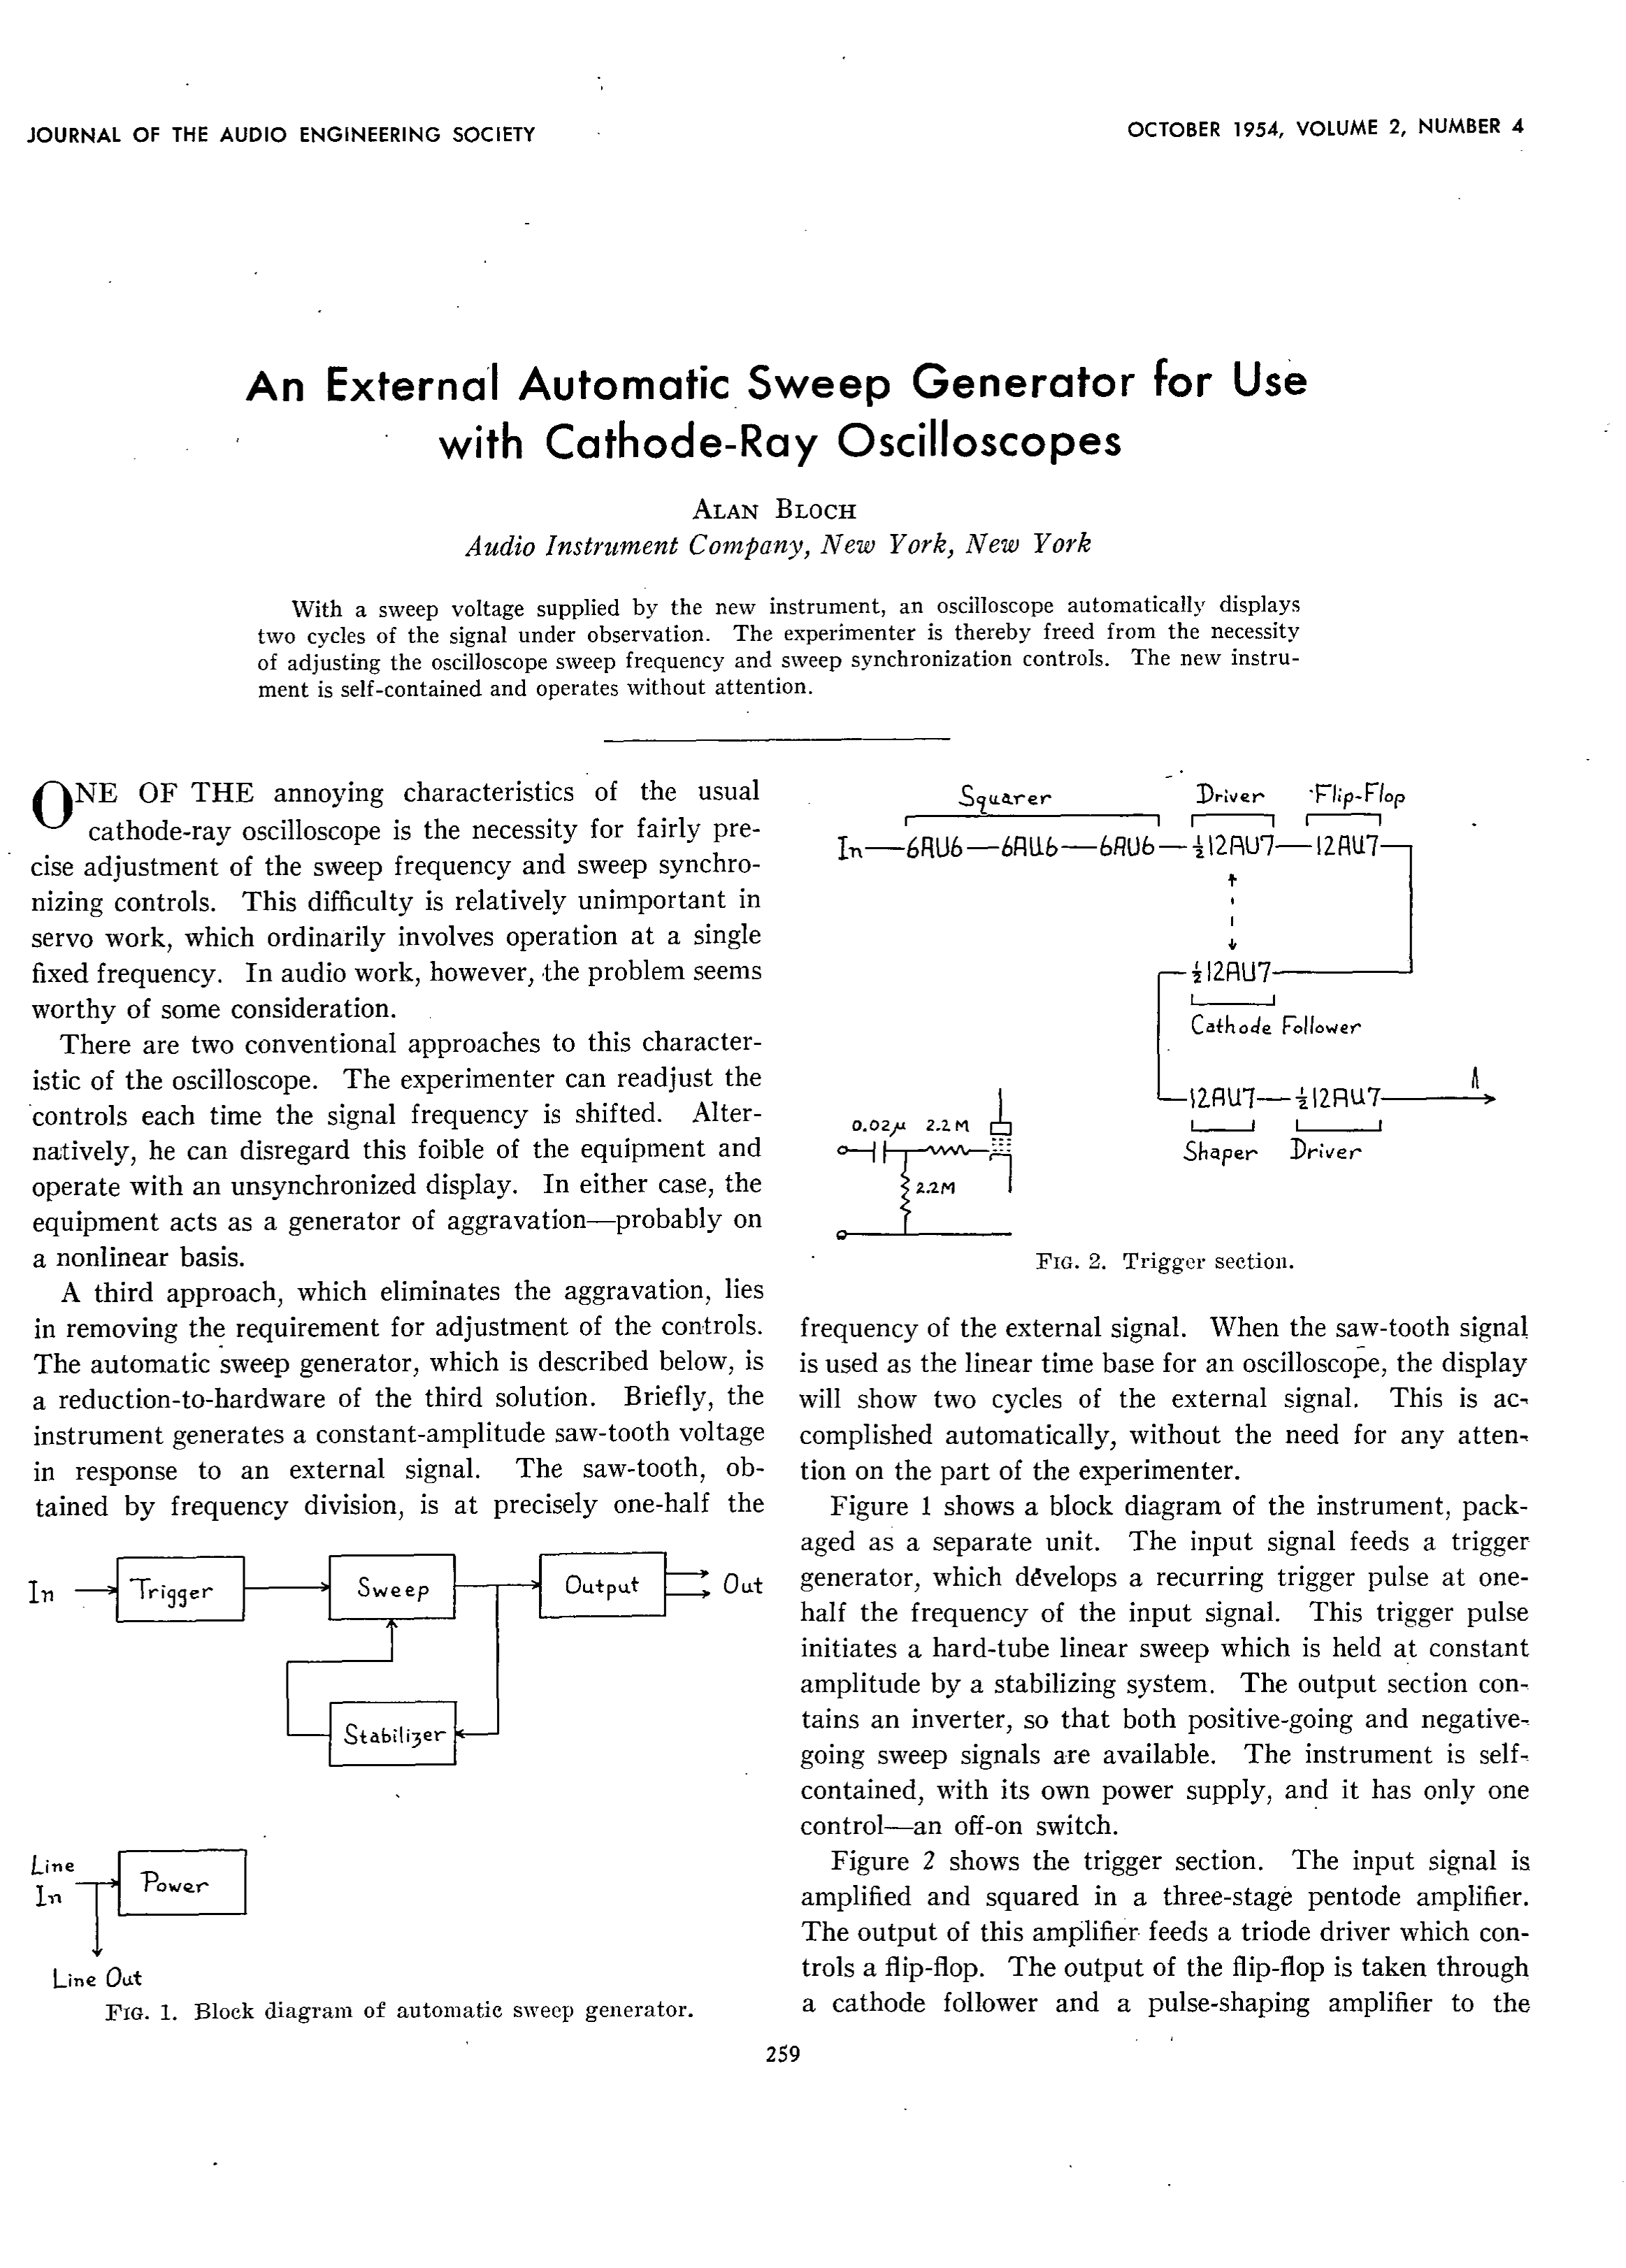 AES E-Library » An External Automatic Sweep Generator for Use with